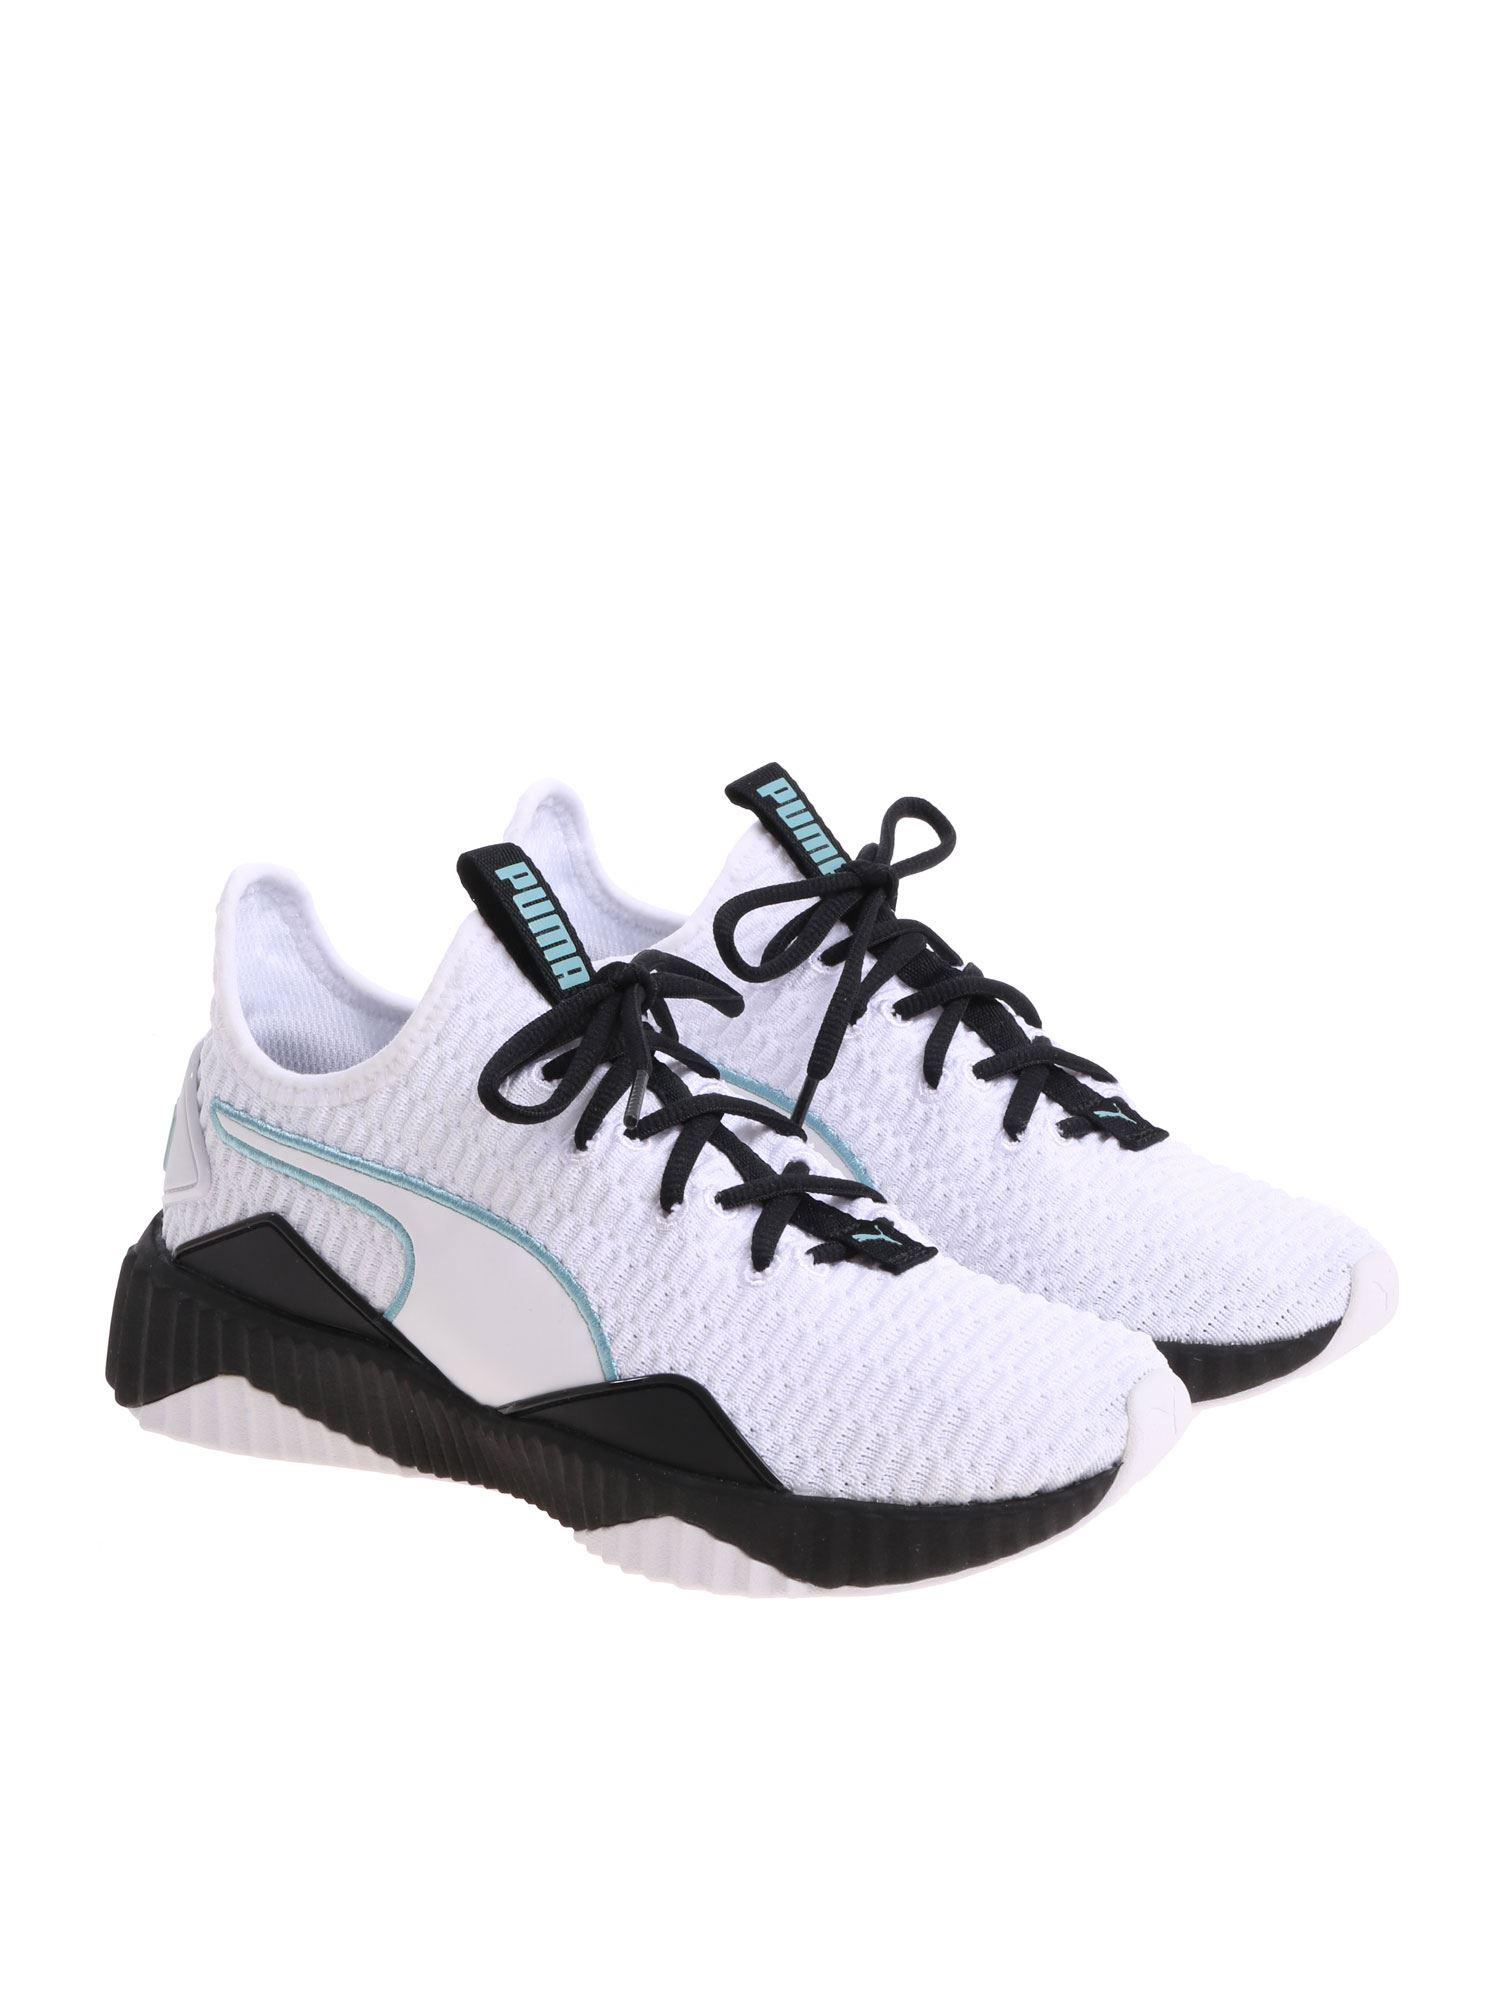 d2c0f0bf829778 PUMA - Black And White Defy Sneakers - Lyst. View fullscreen